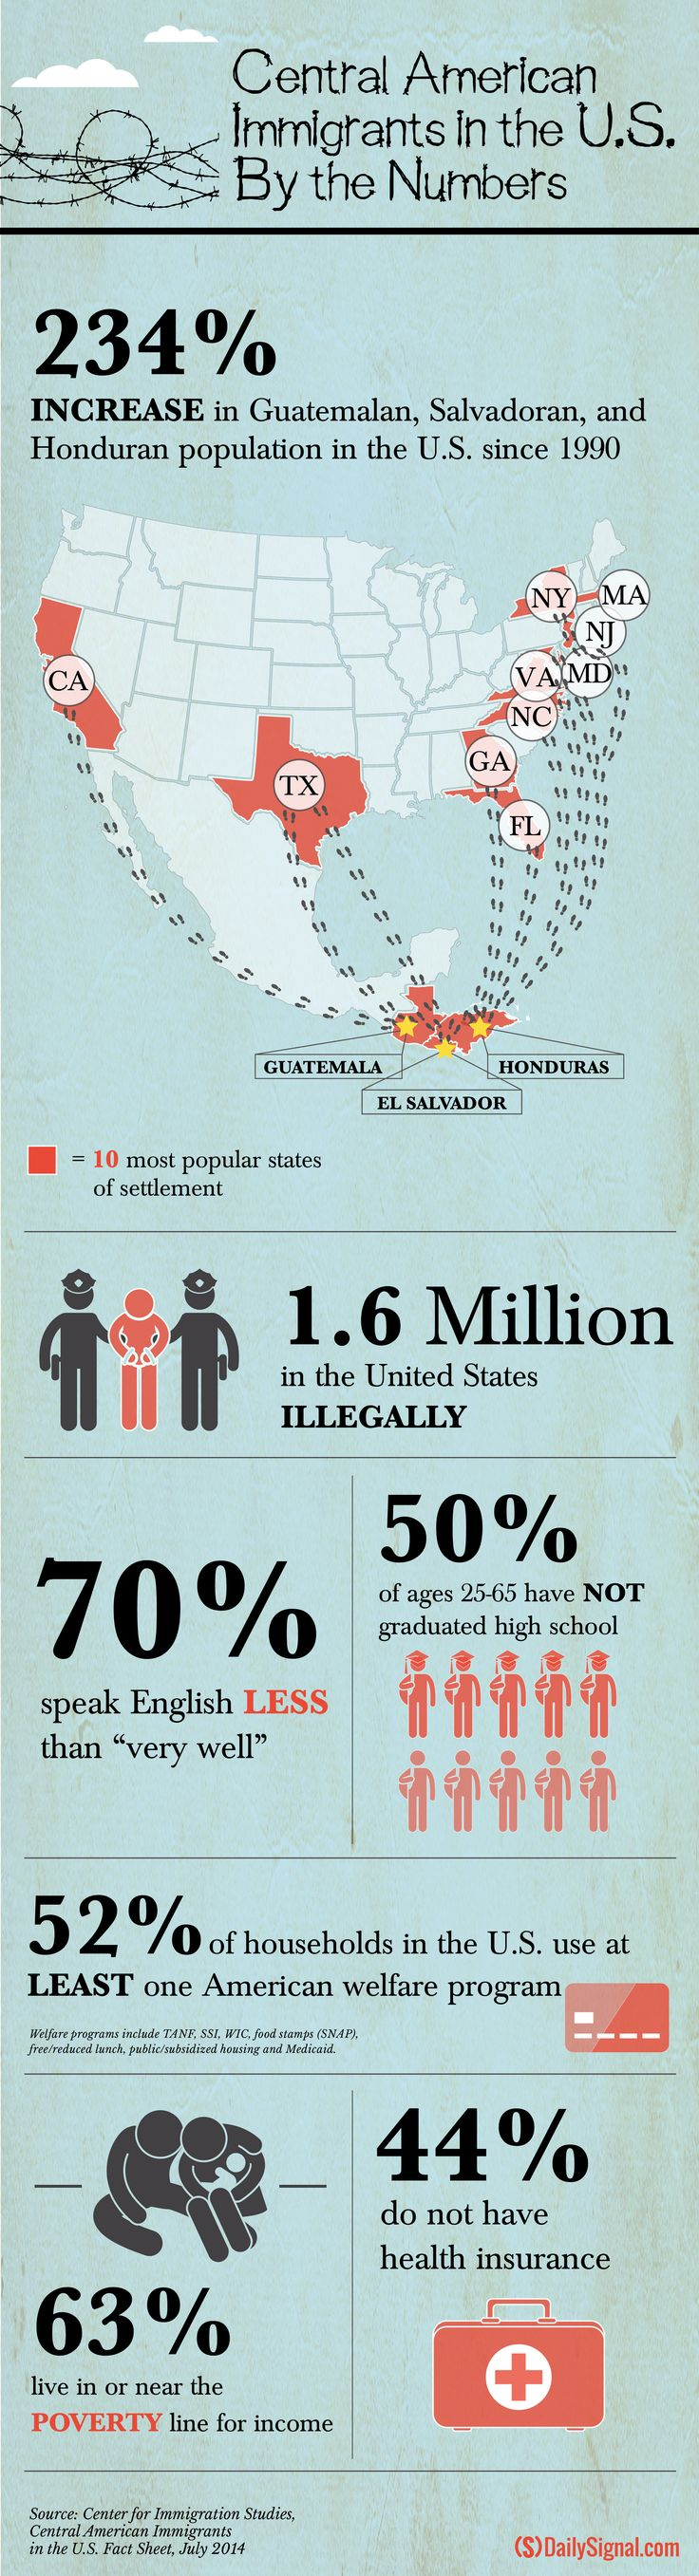 By the Numbers: Central American Immigrants in U.S. #immigration #border #politics